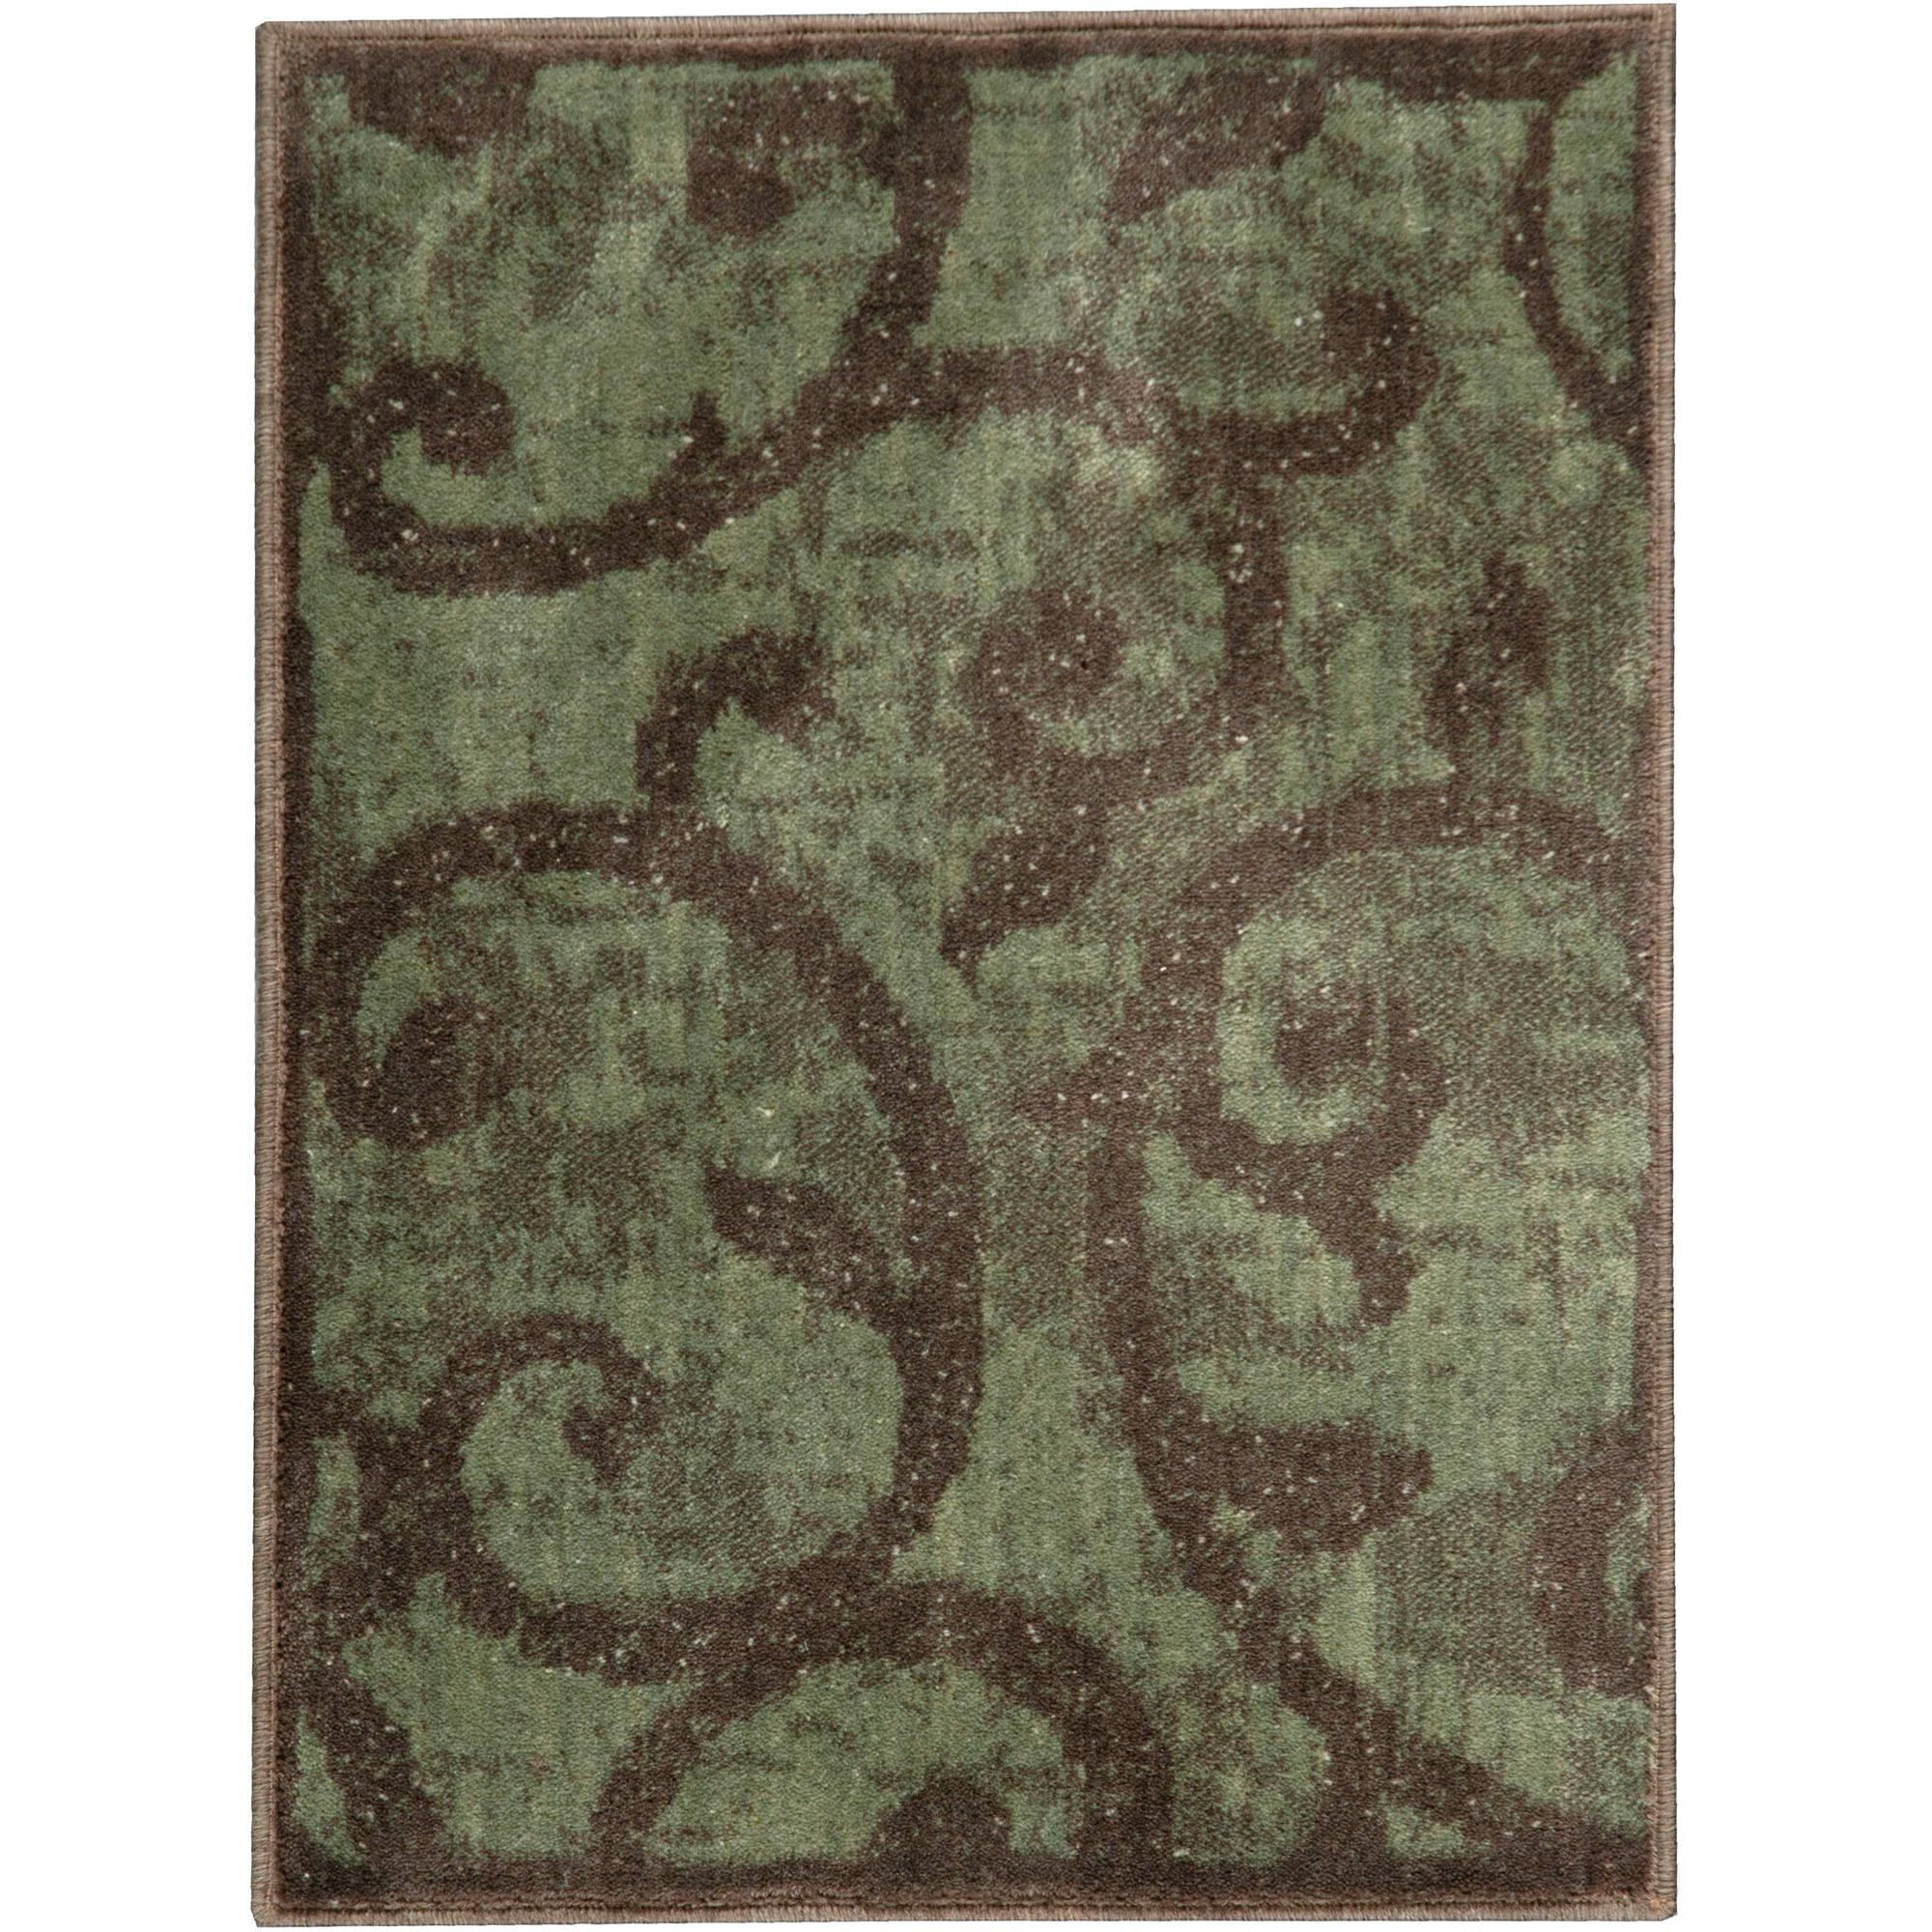 Nourison Expressions XP02 Textured Decorative Area Rug